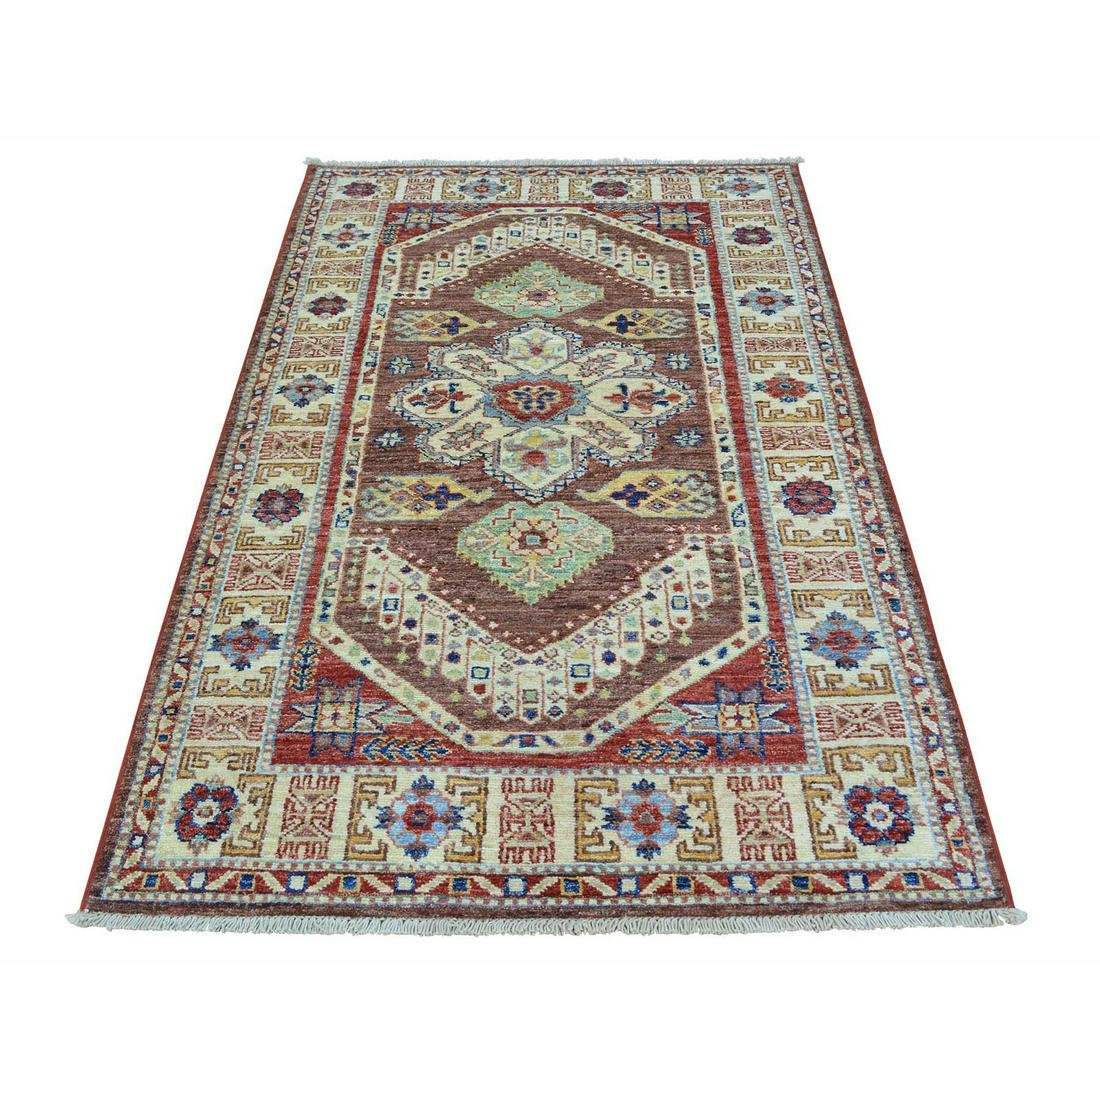 Super Kazak Tribal Design Pure Wool Hand-Knotted